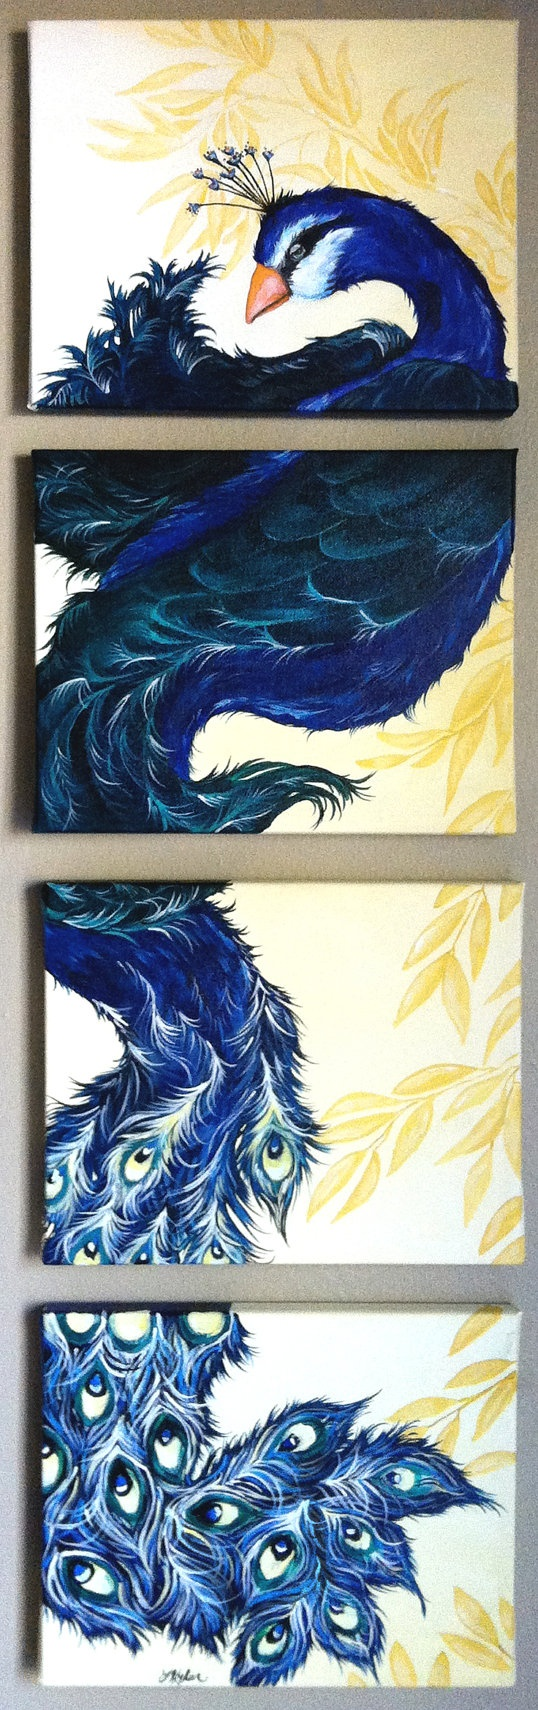 Multiple Canvas Peacock Painting by SweetSerendipity01 on Etsy, $85.00